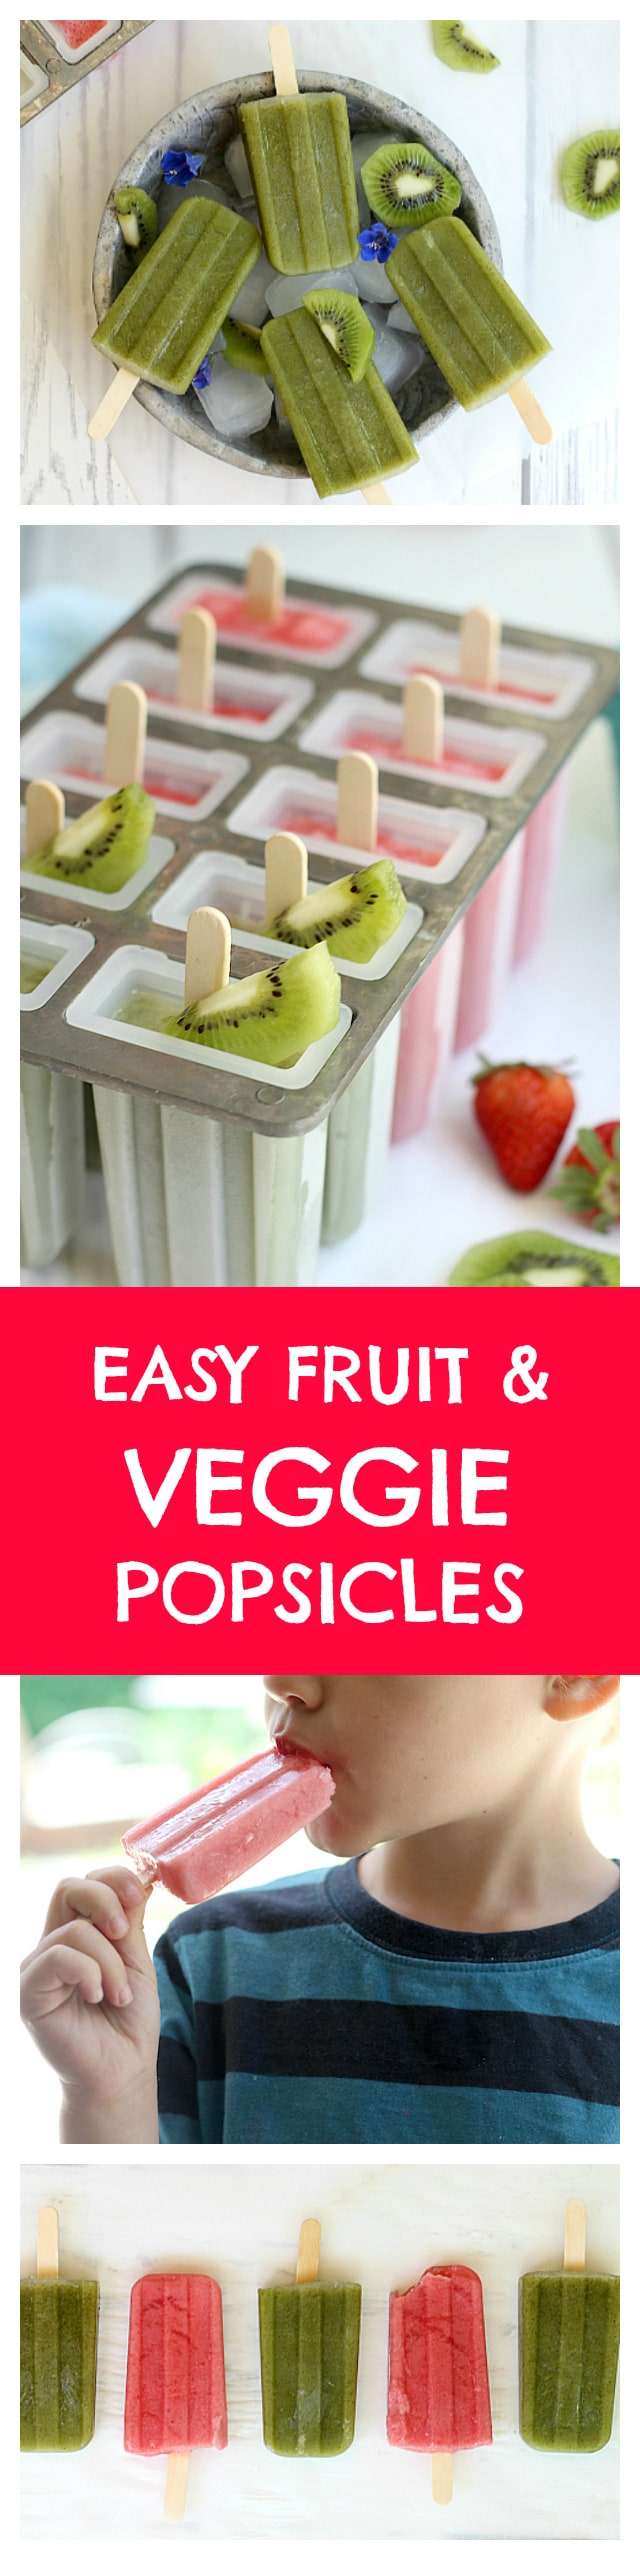 Kiwi Spinach and Strawberry Banana Popsicle Recipes | Delightful Mom Food